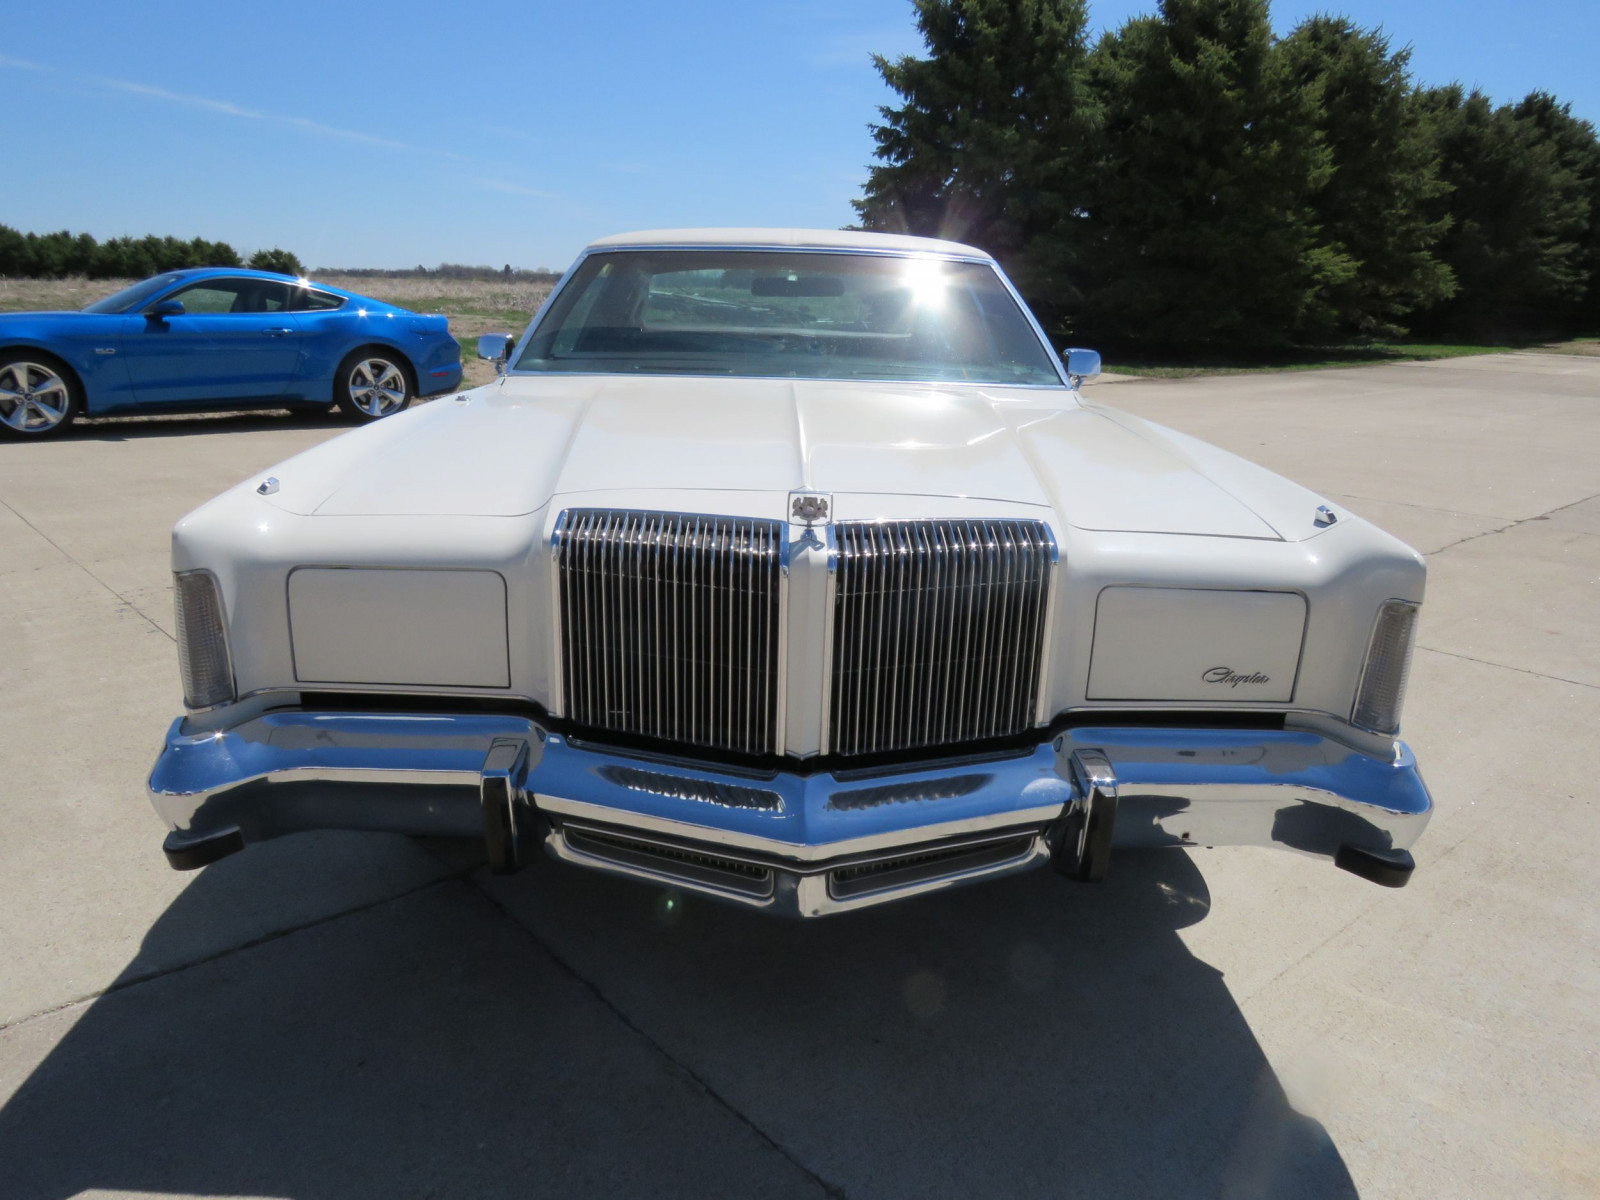 1977 Chrysler New Yorker Brougham 2dr Landau Coupe with ST. Regis - Image 2